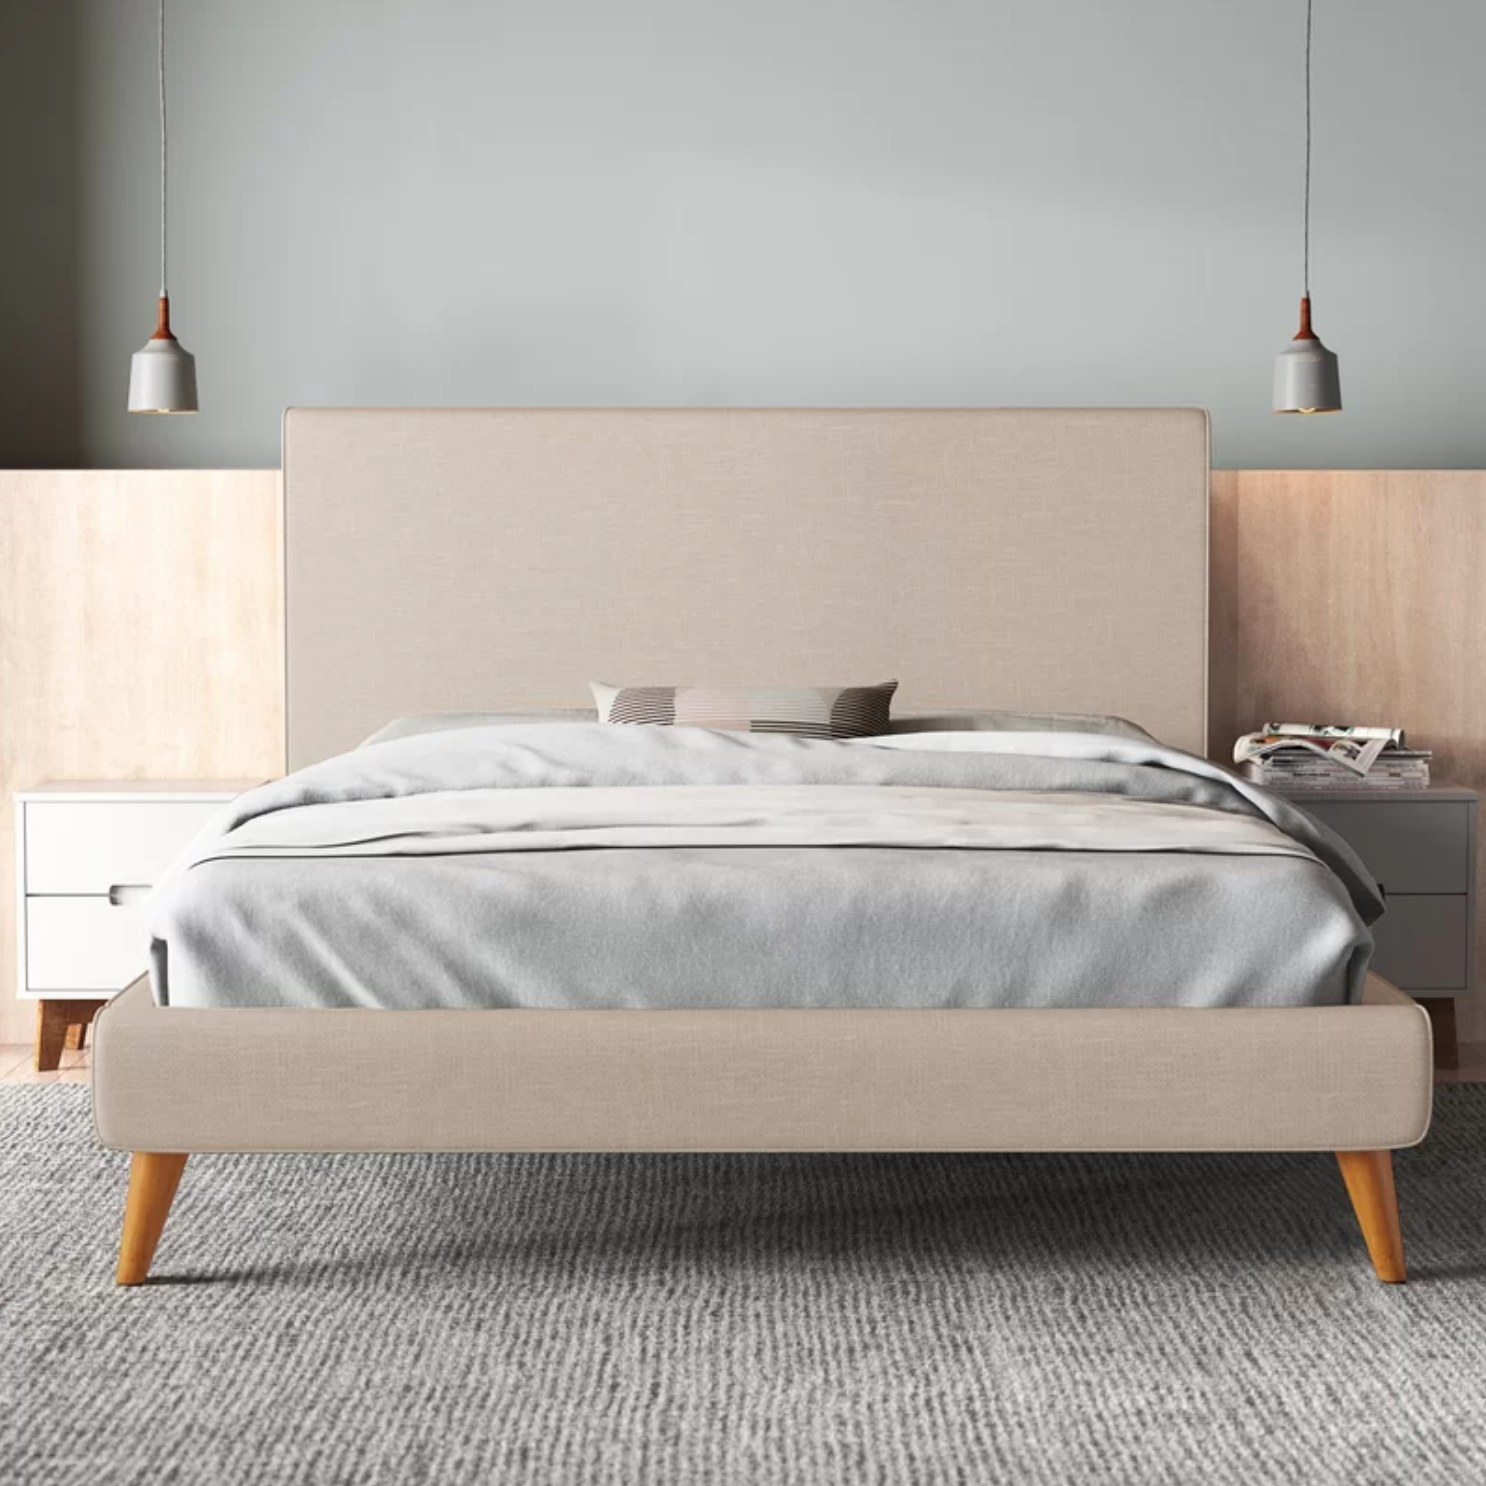 The bed in light gray